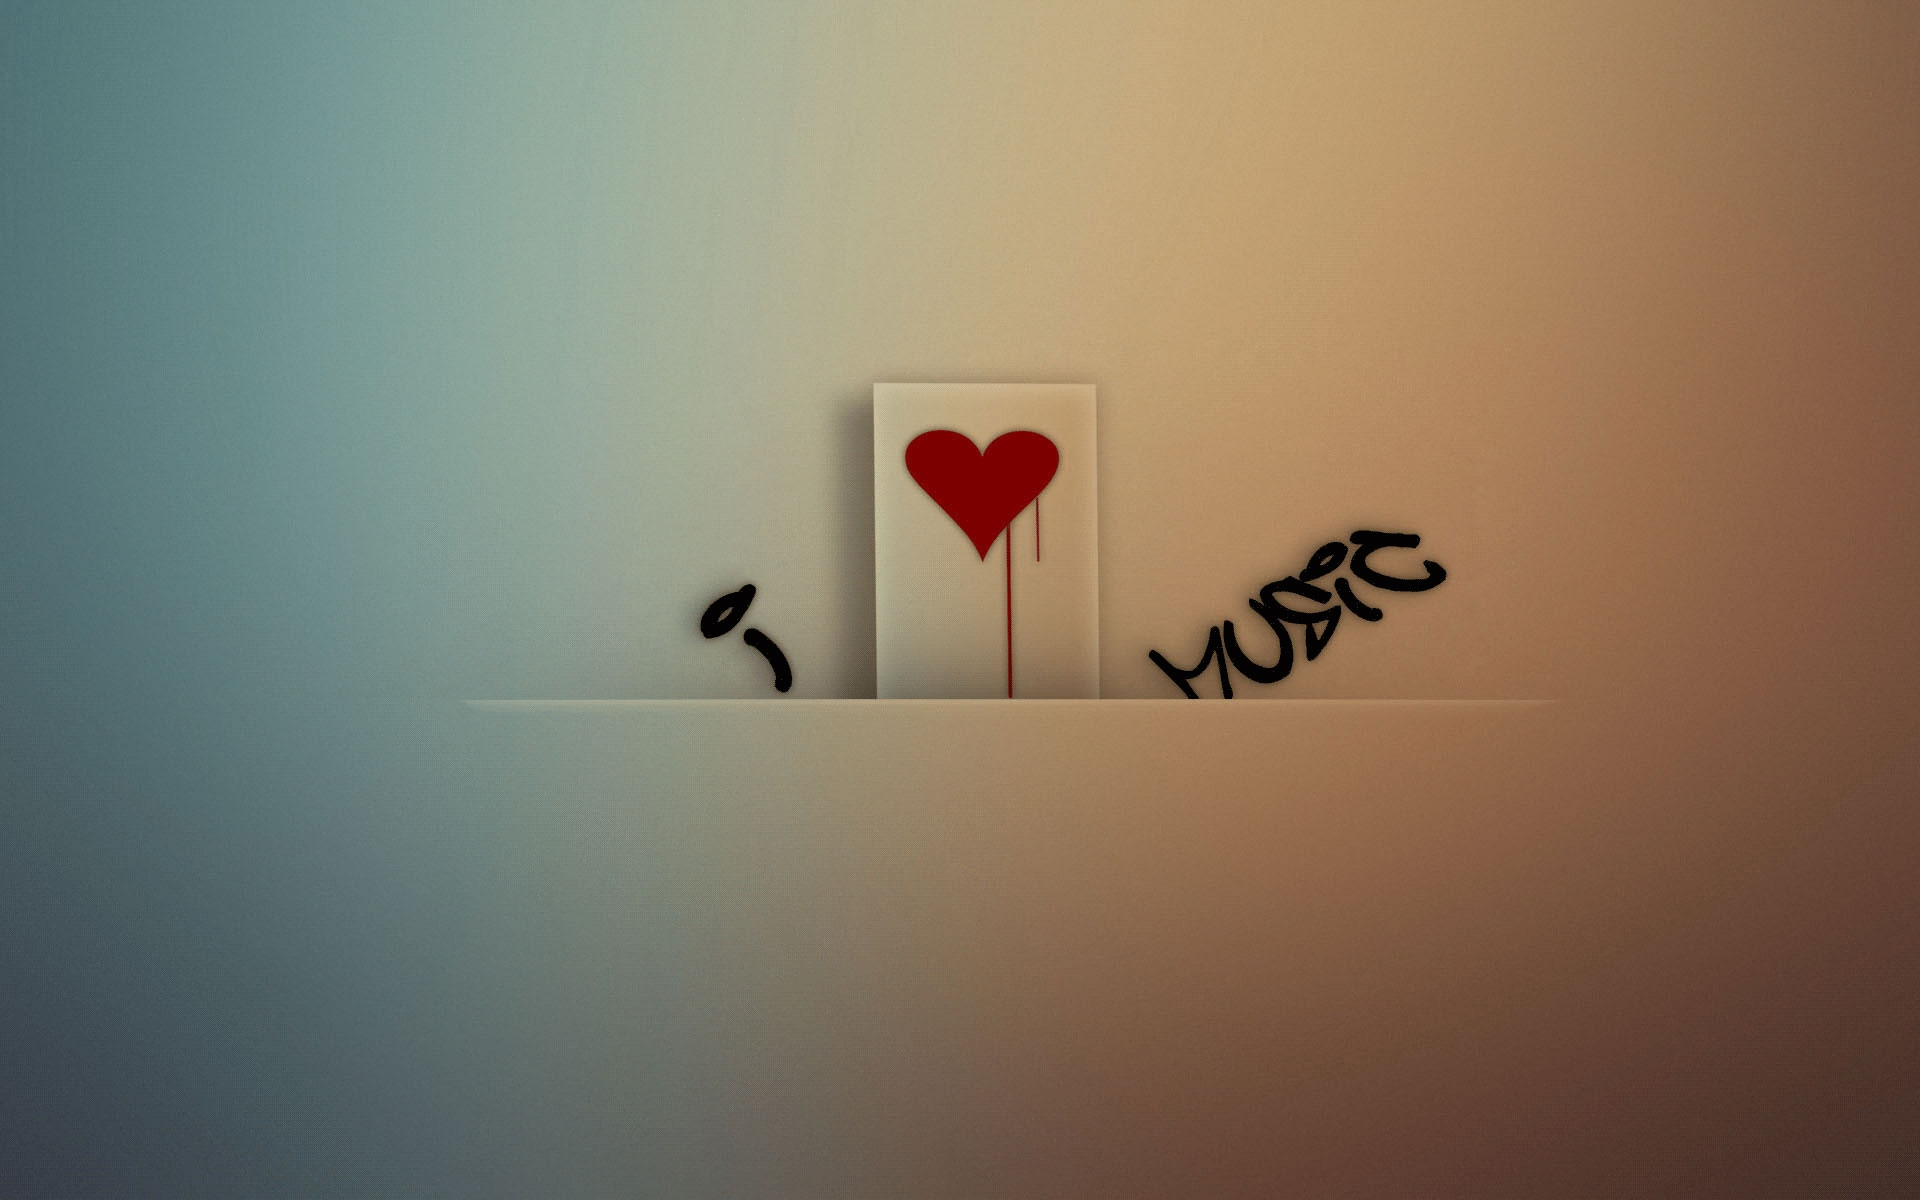 Love Wallpapers Songs : Love Music Wallpapers (43 Wallpapers) Adorable Wallpapers